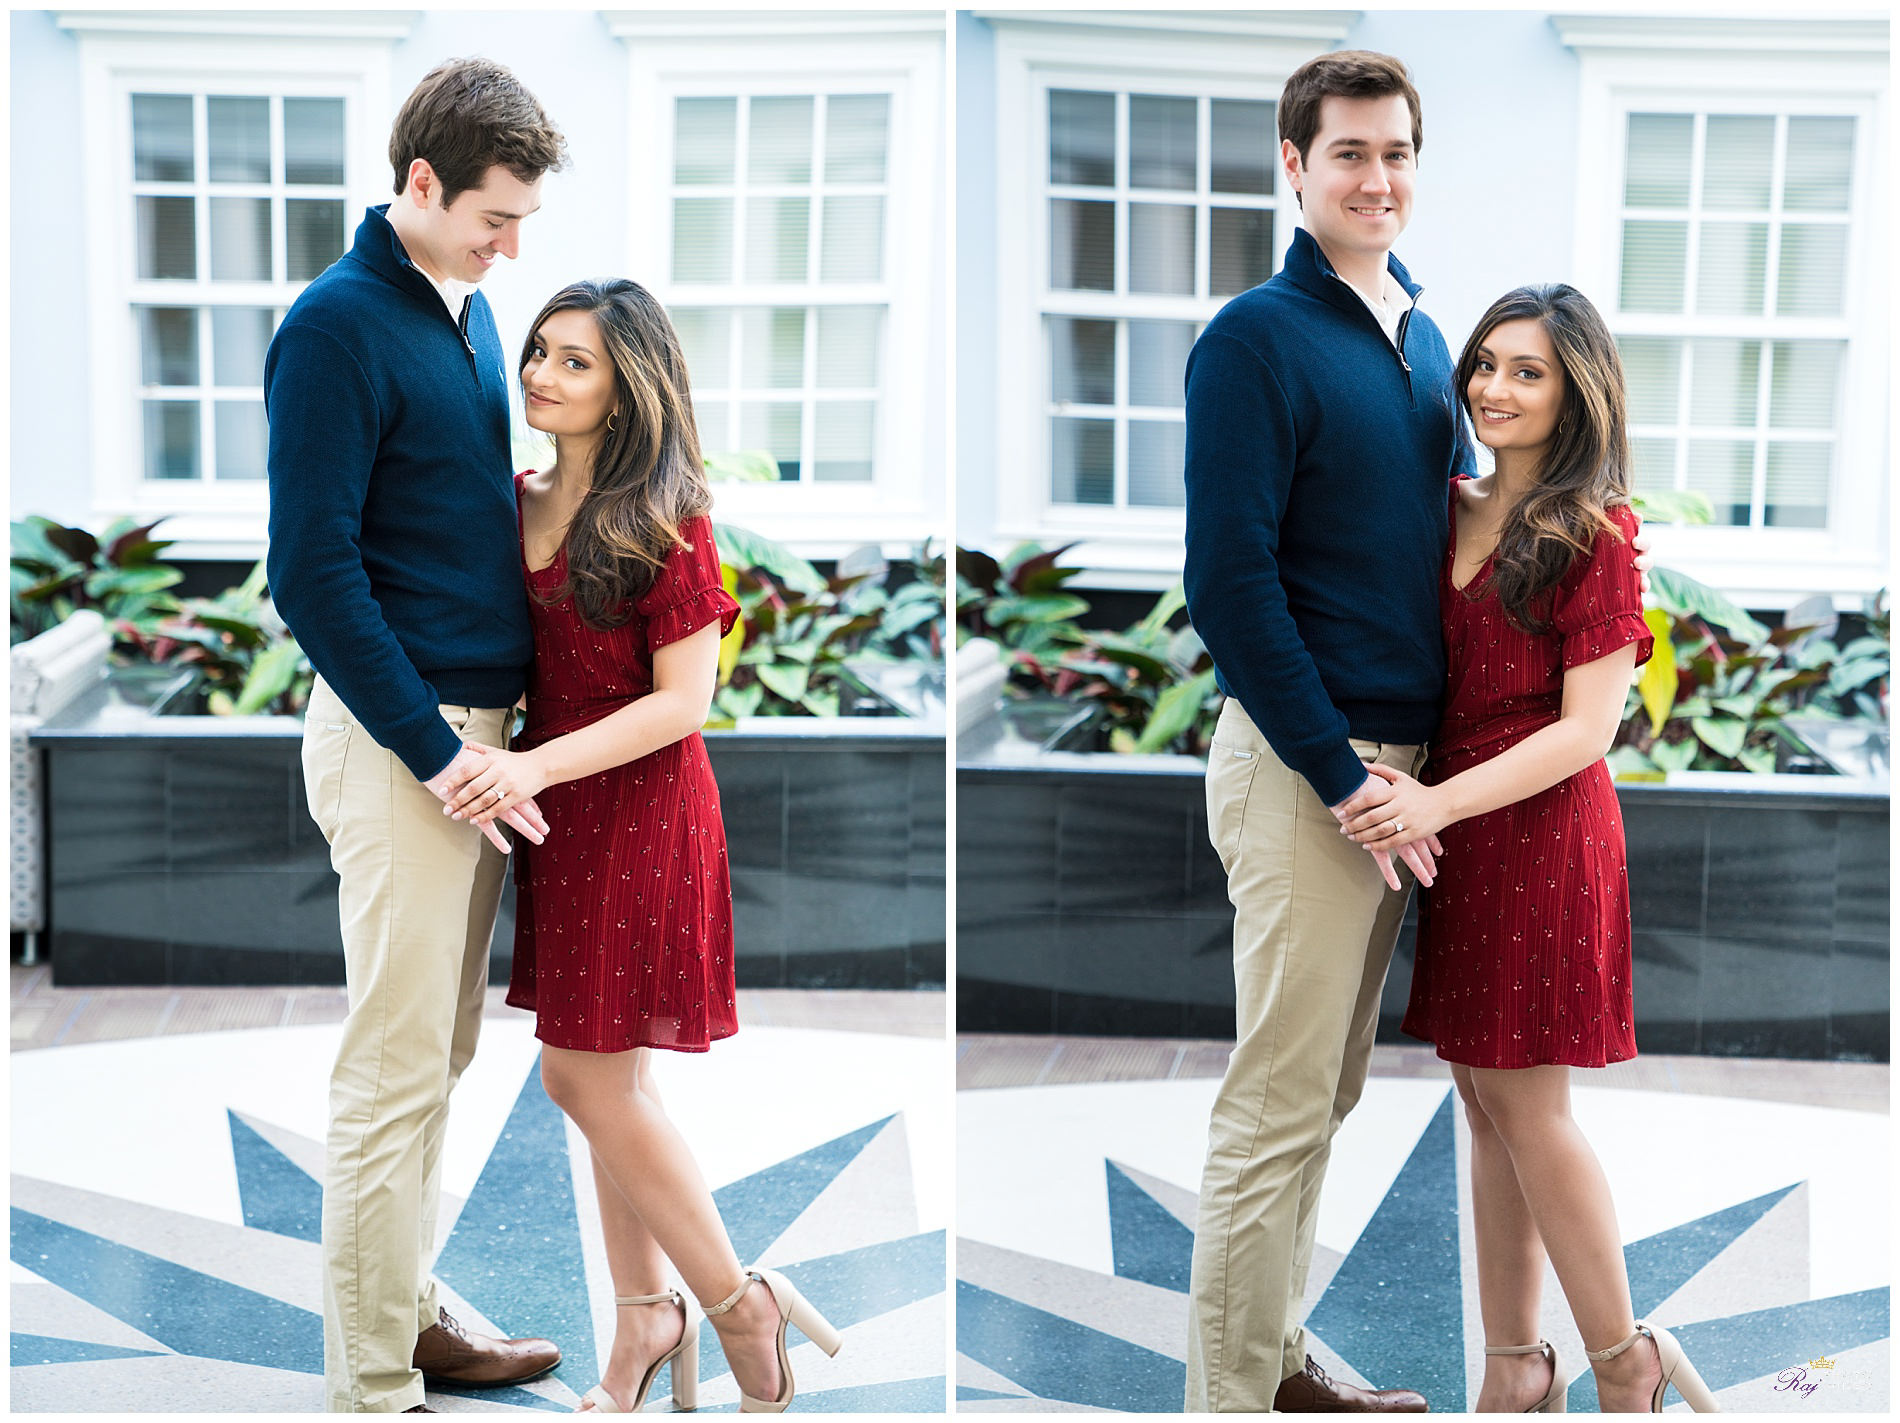 The-College-of-New-Jersey-Engagement-Shoot-Prerna-Kevin7.jpg